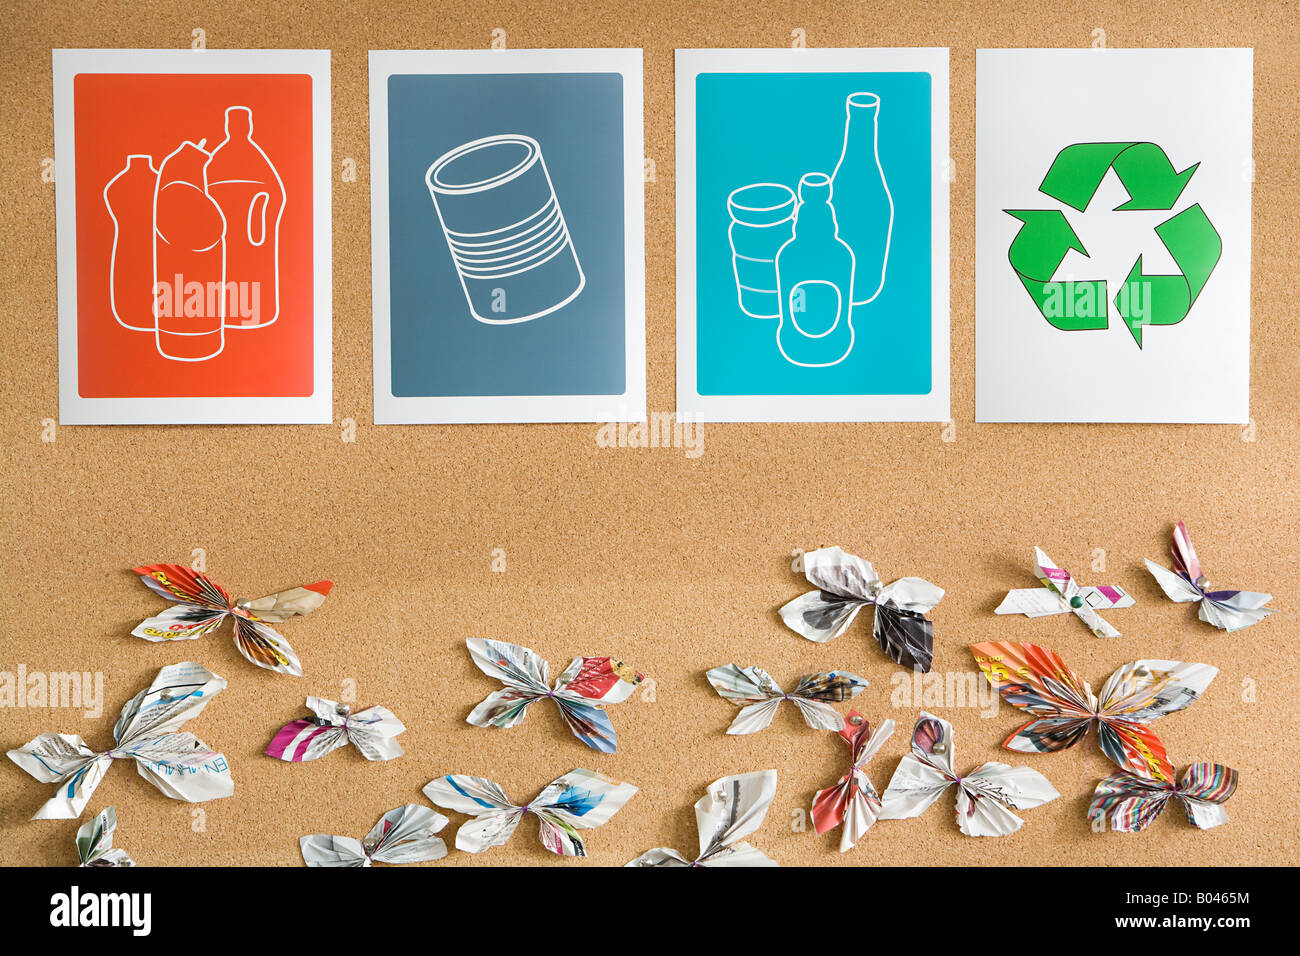 Illustrations de recyclage Photo Stock